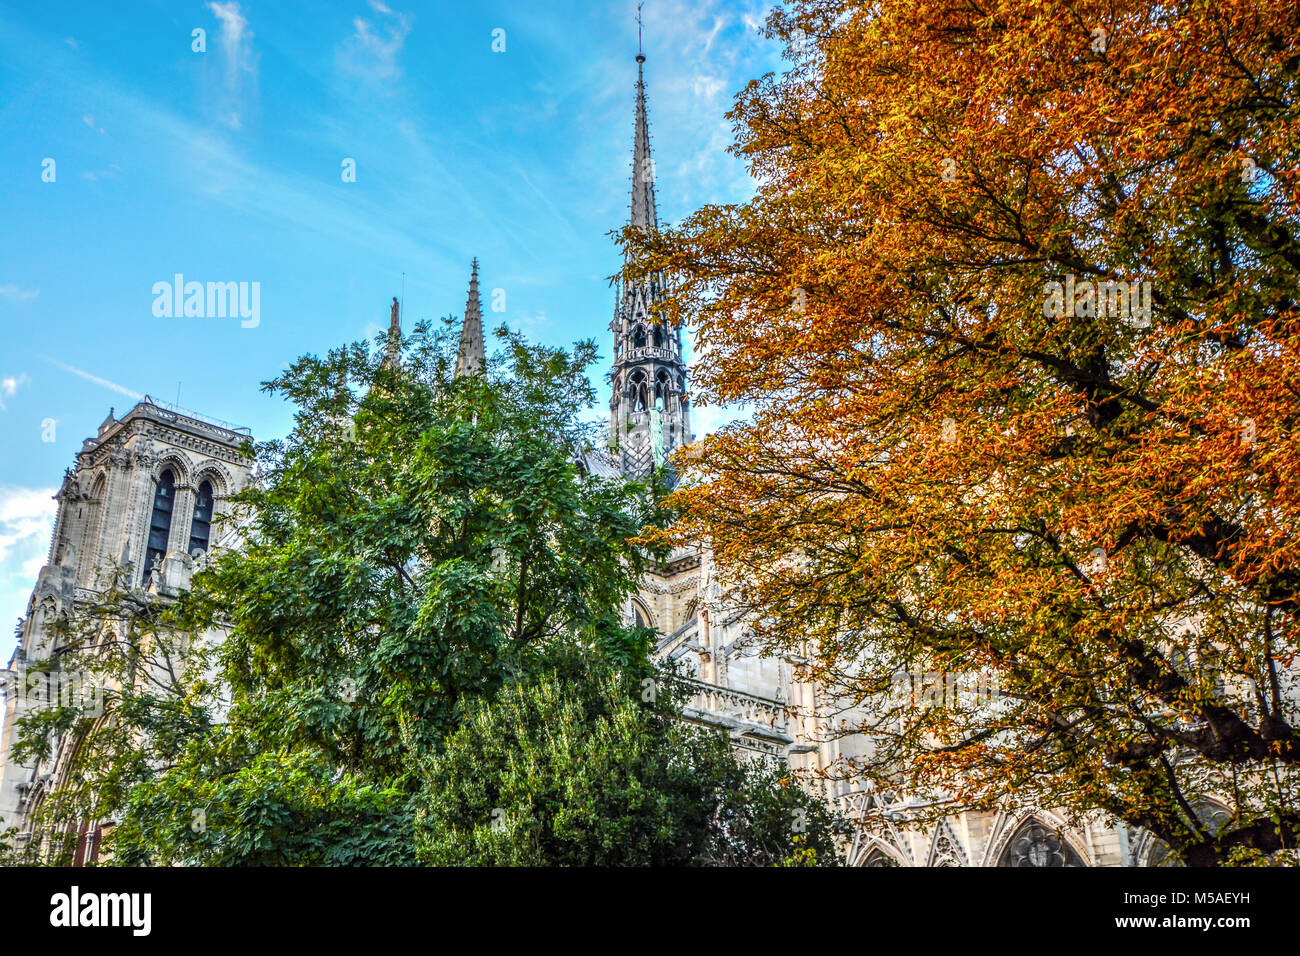 The Notre Dame cathedral with the apostles of Saint Luke climbing the gothic spire on a sunny autumn day in Paris - Stock Image